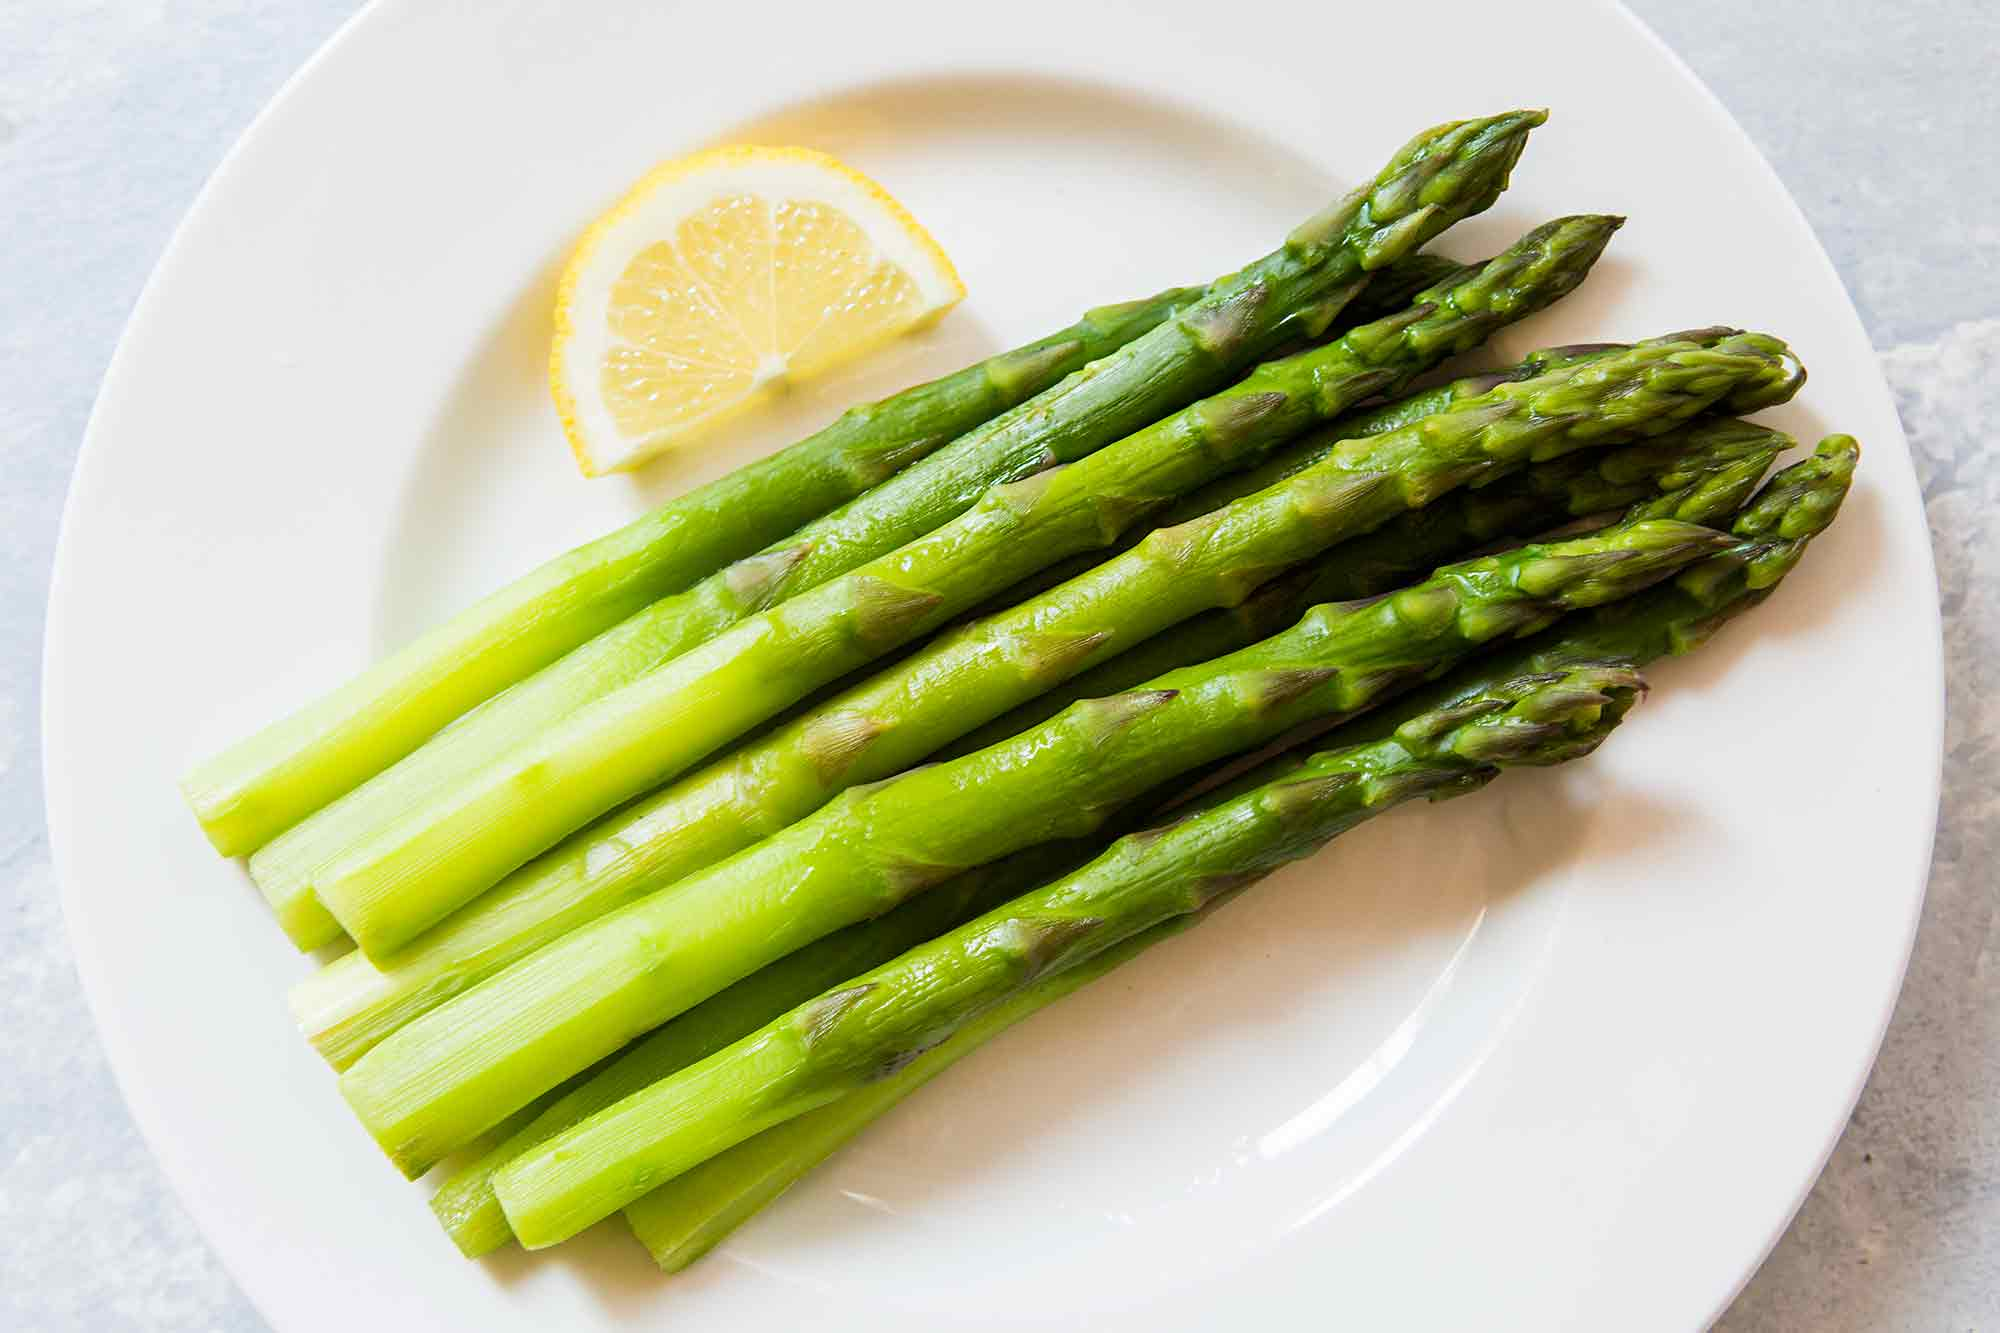 Cooked asparagus on a plate with lemon on side